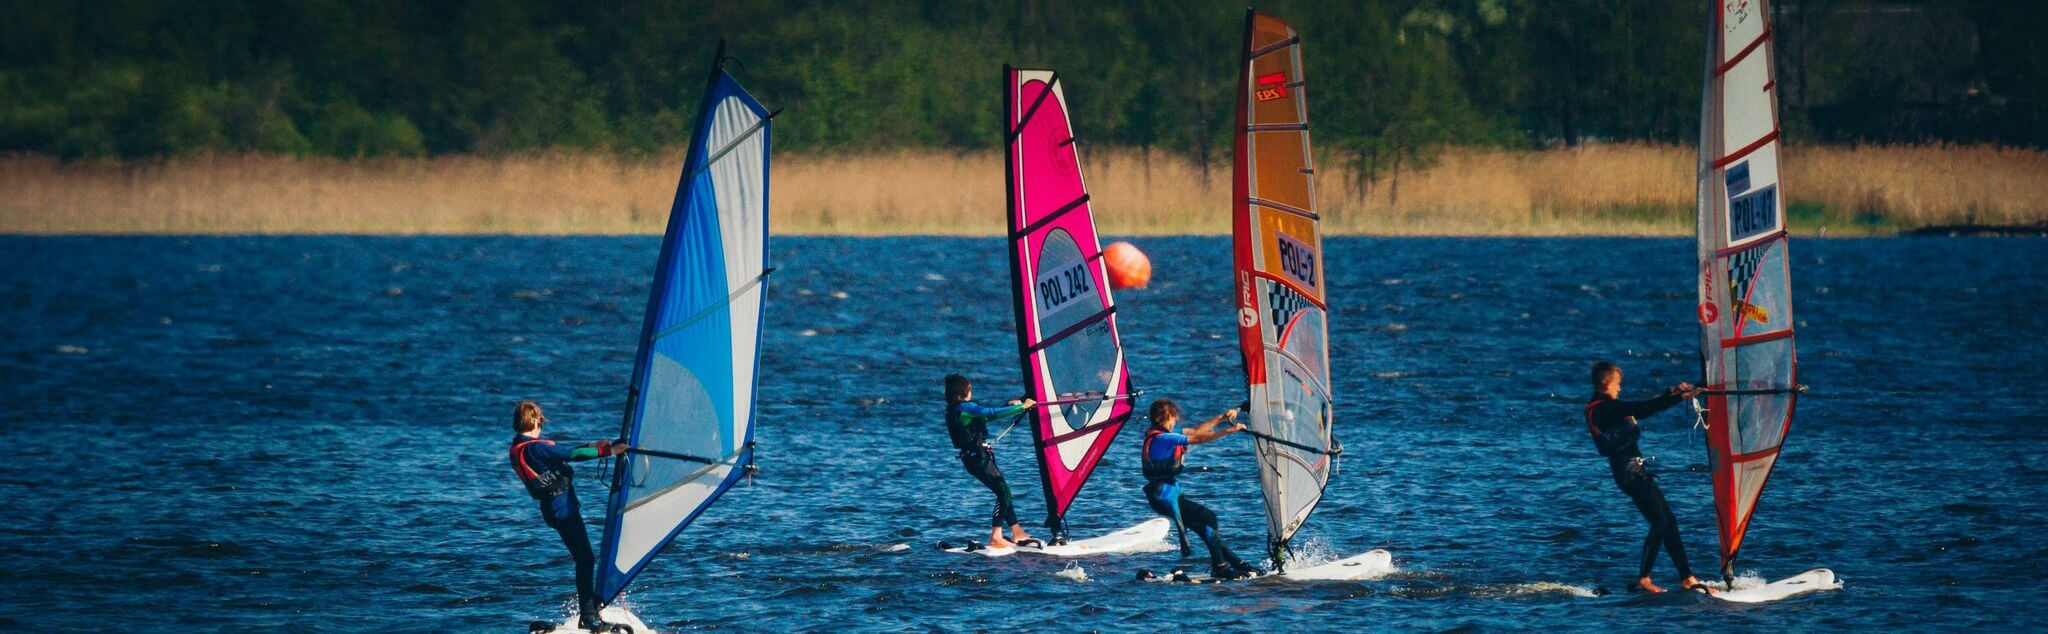 Windsurfing in Hertfordshire